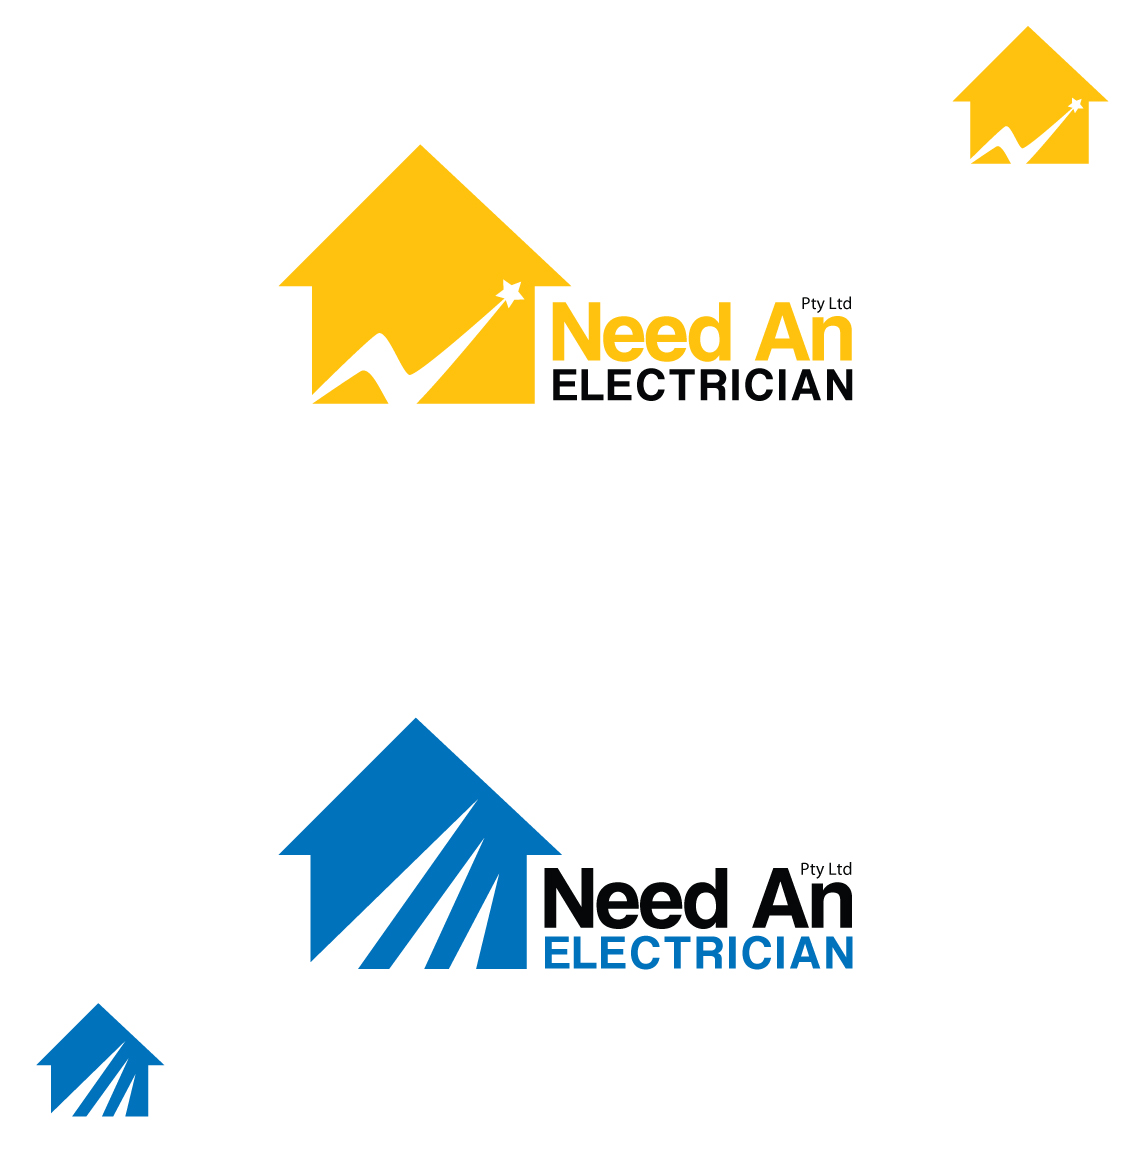 Character Design Jobs Australia : Bold modern character design for need an electrician pty